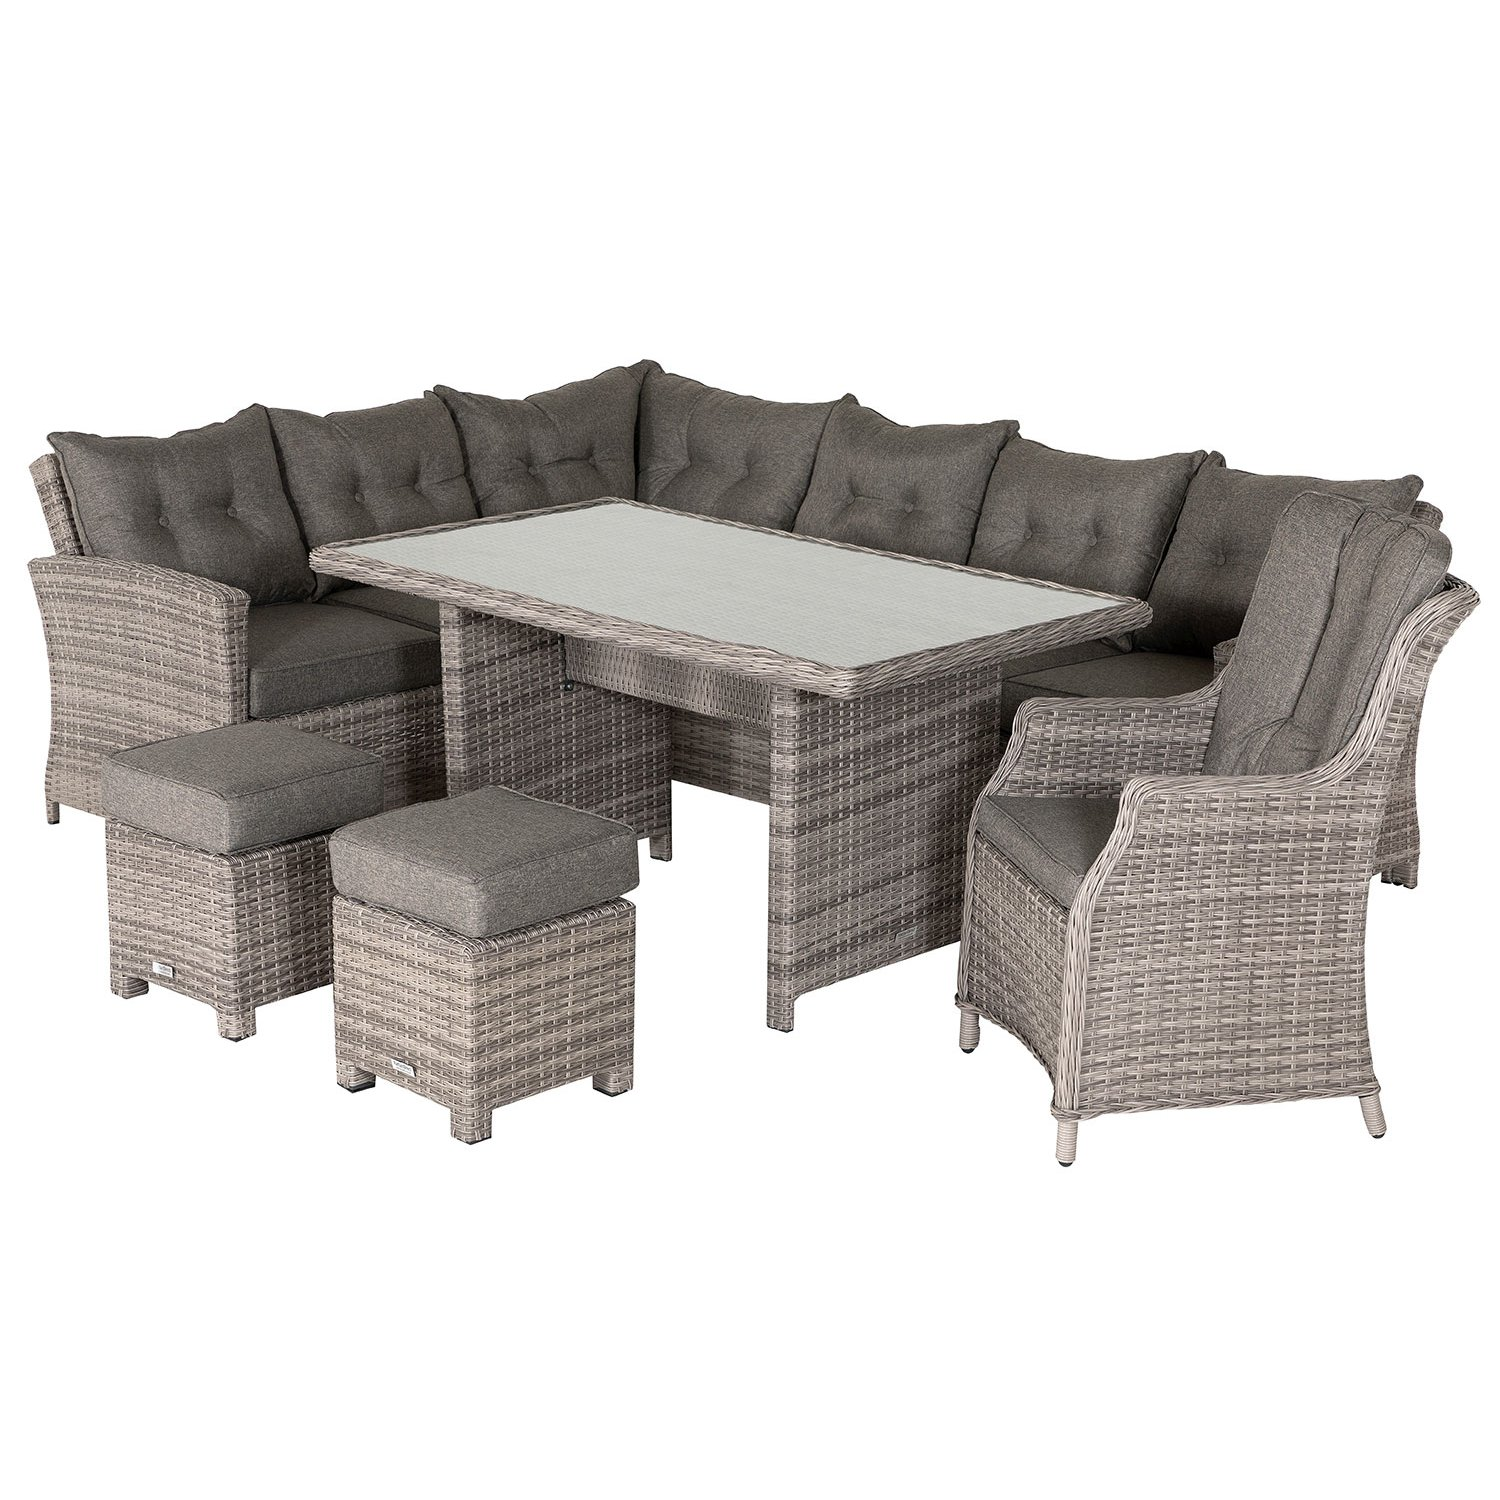 image-Sorrento Rattan Garden Corner Dining Set with Chair in Grey